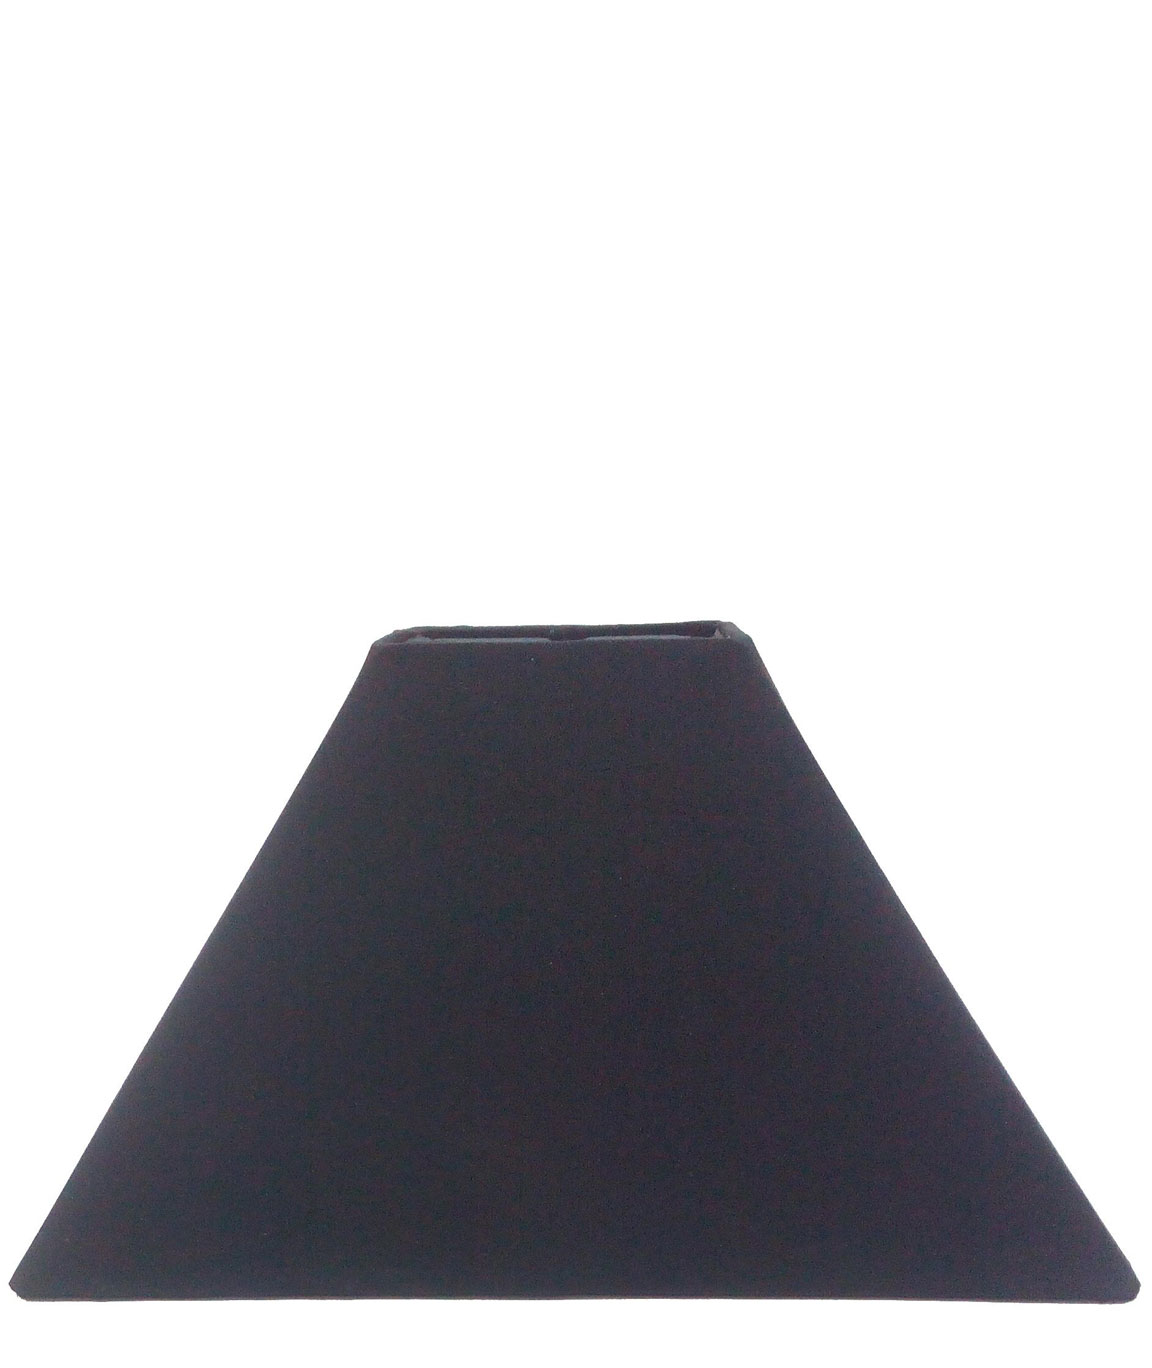 RDC 10 Inches Square Plain Black Lamp Shade for Table Lamp